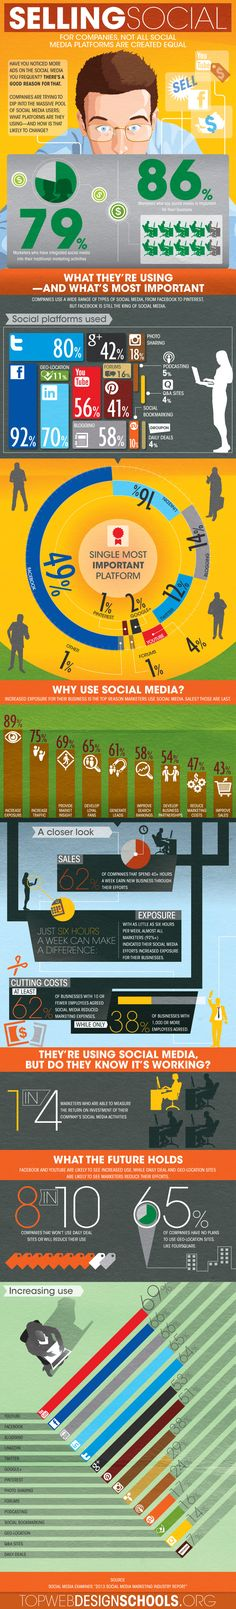 Why Social Media is Important for Your Brand: Infographic